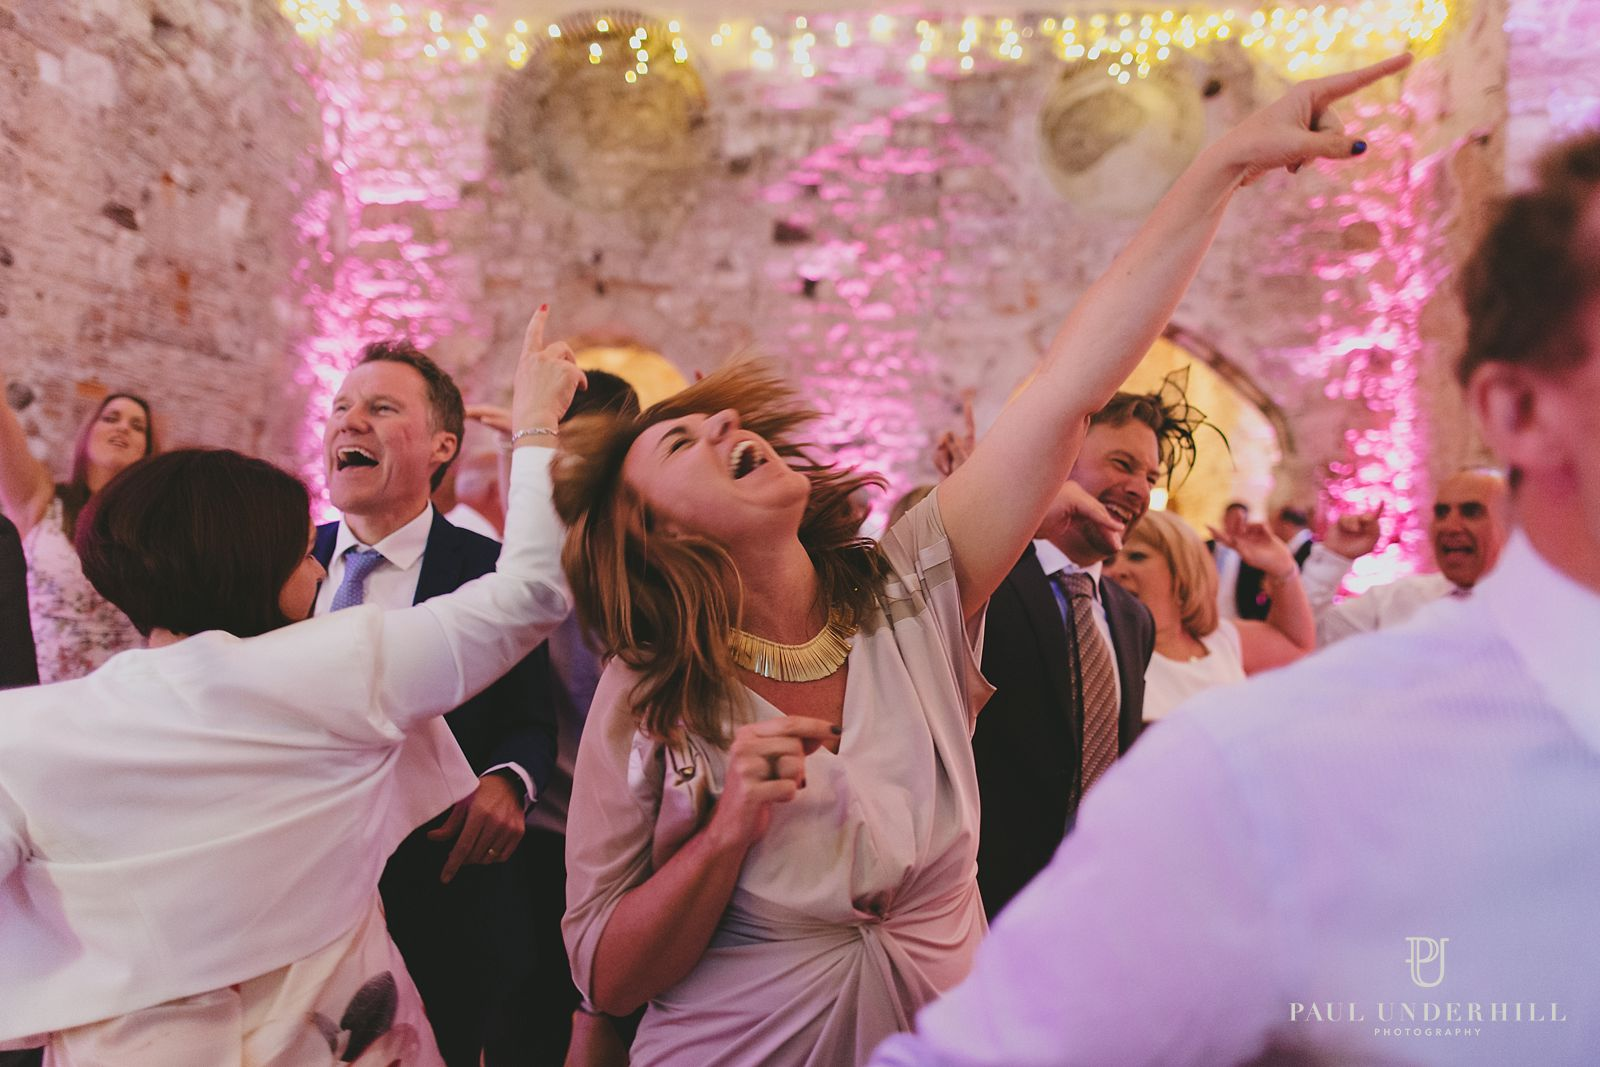 Wedding celebrations Lulworth castle